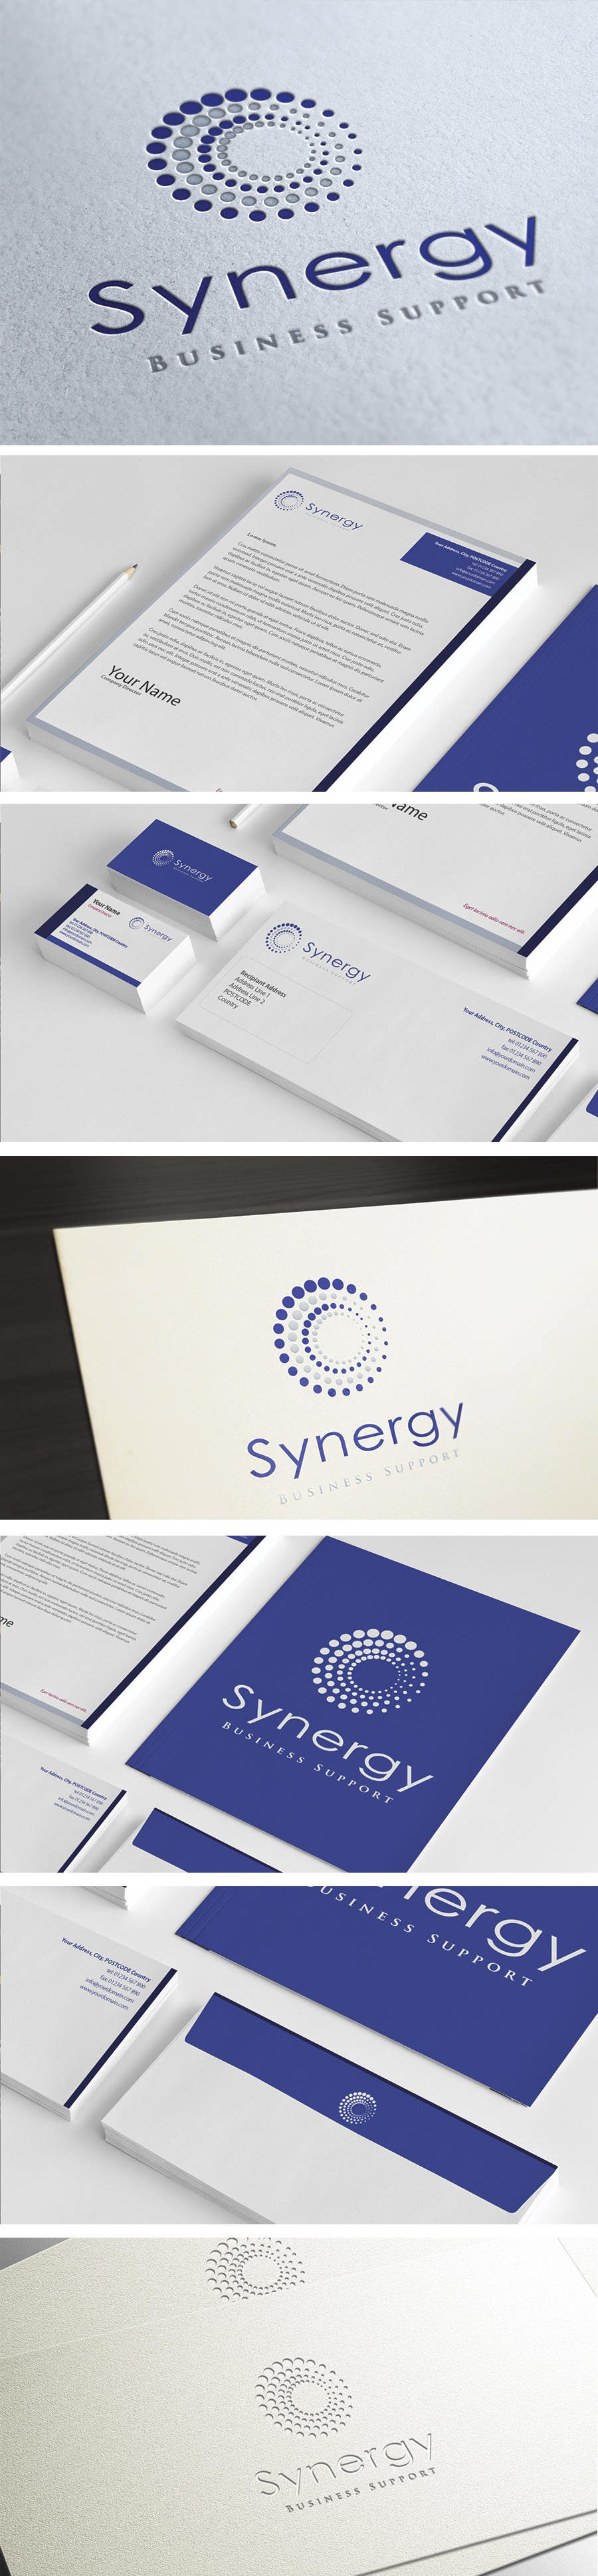 Bài tham dự cuộc thi #                                        156                                      cho                                         Logo and stationery design for Synergy Business Support